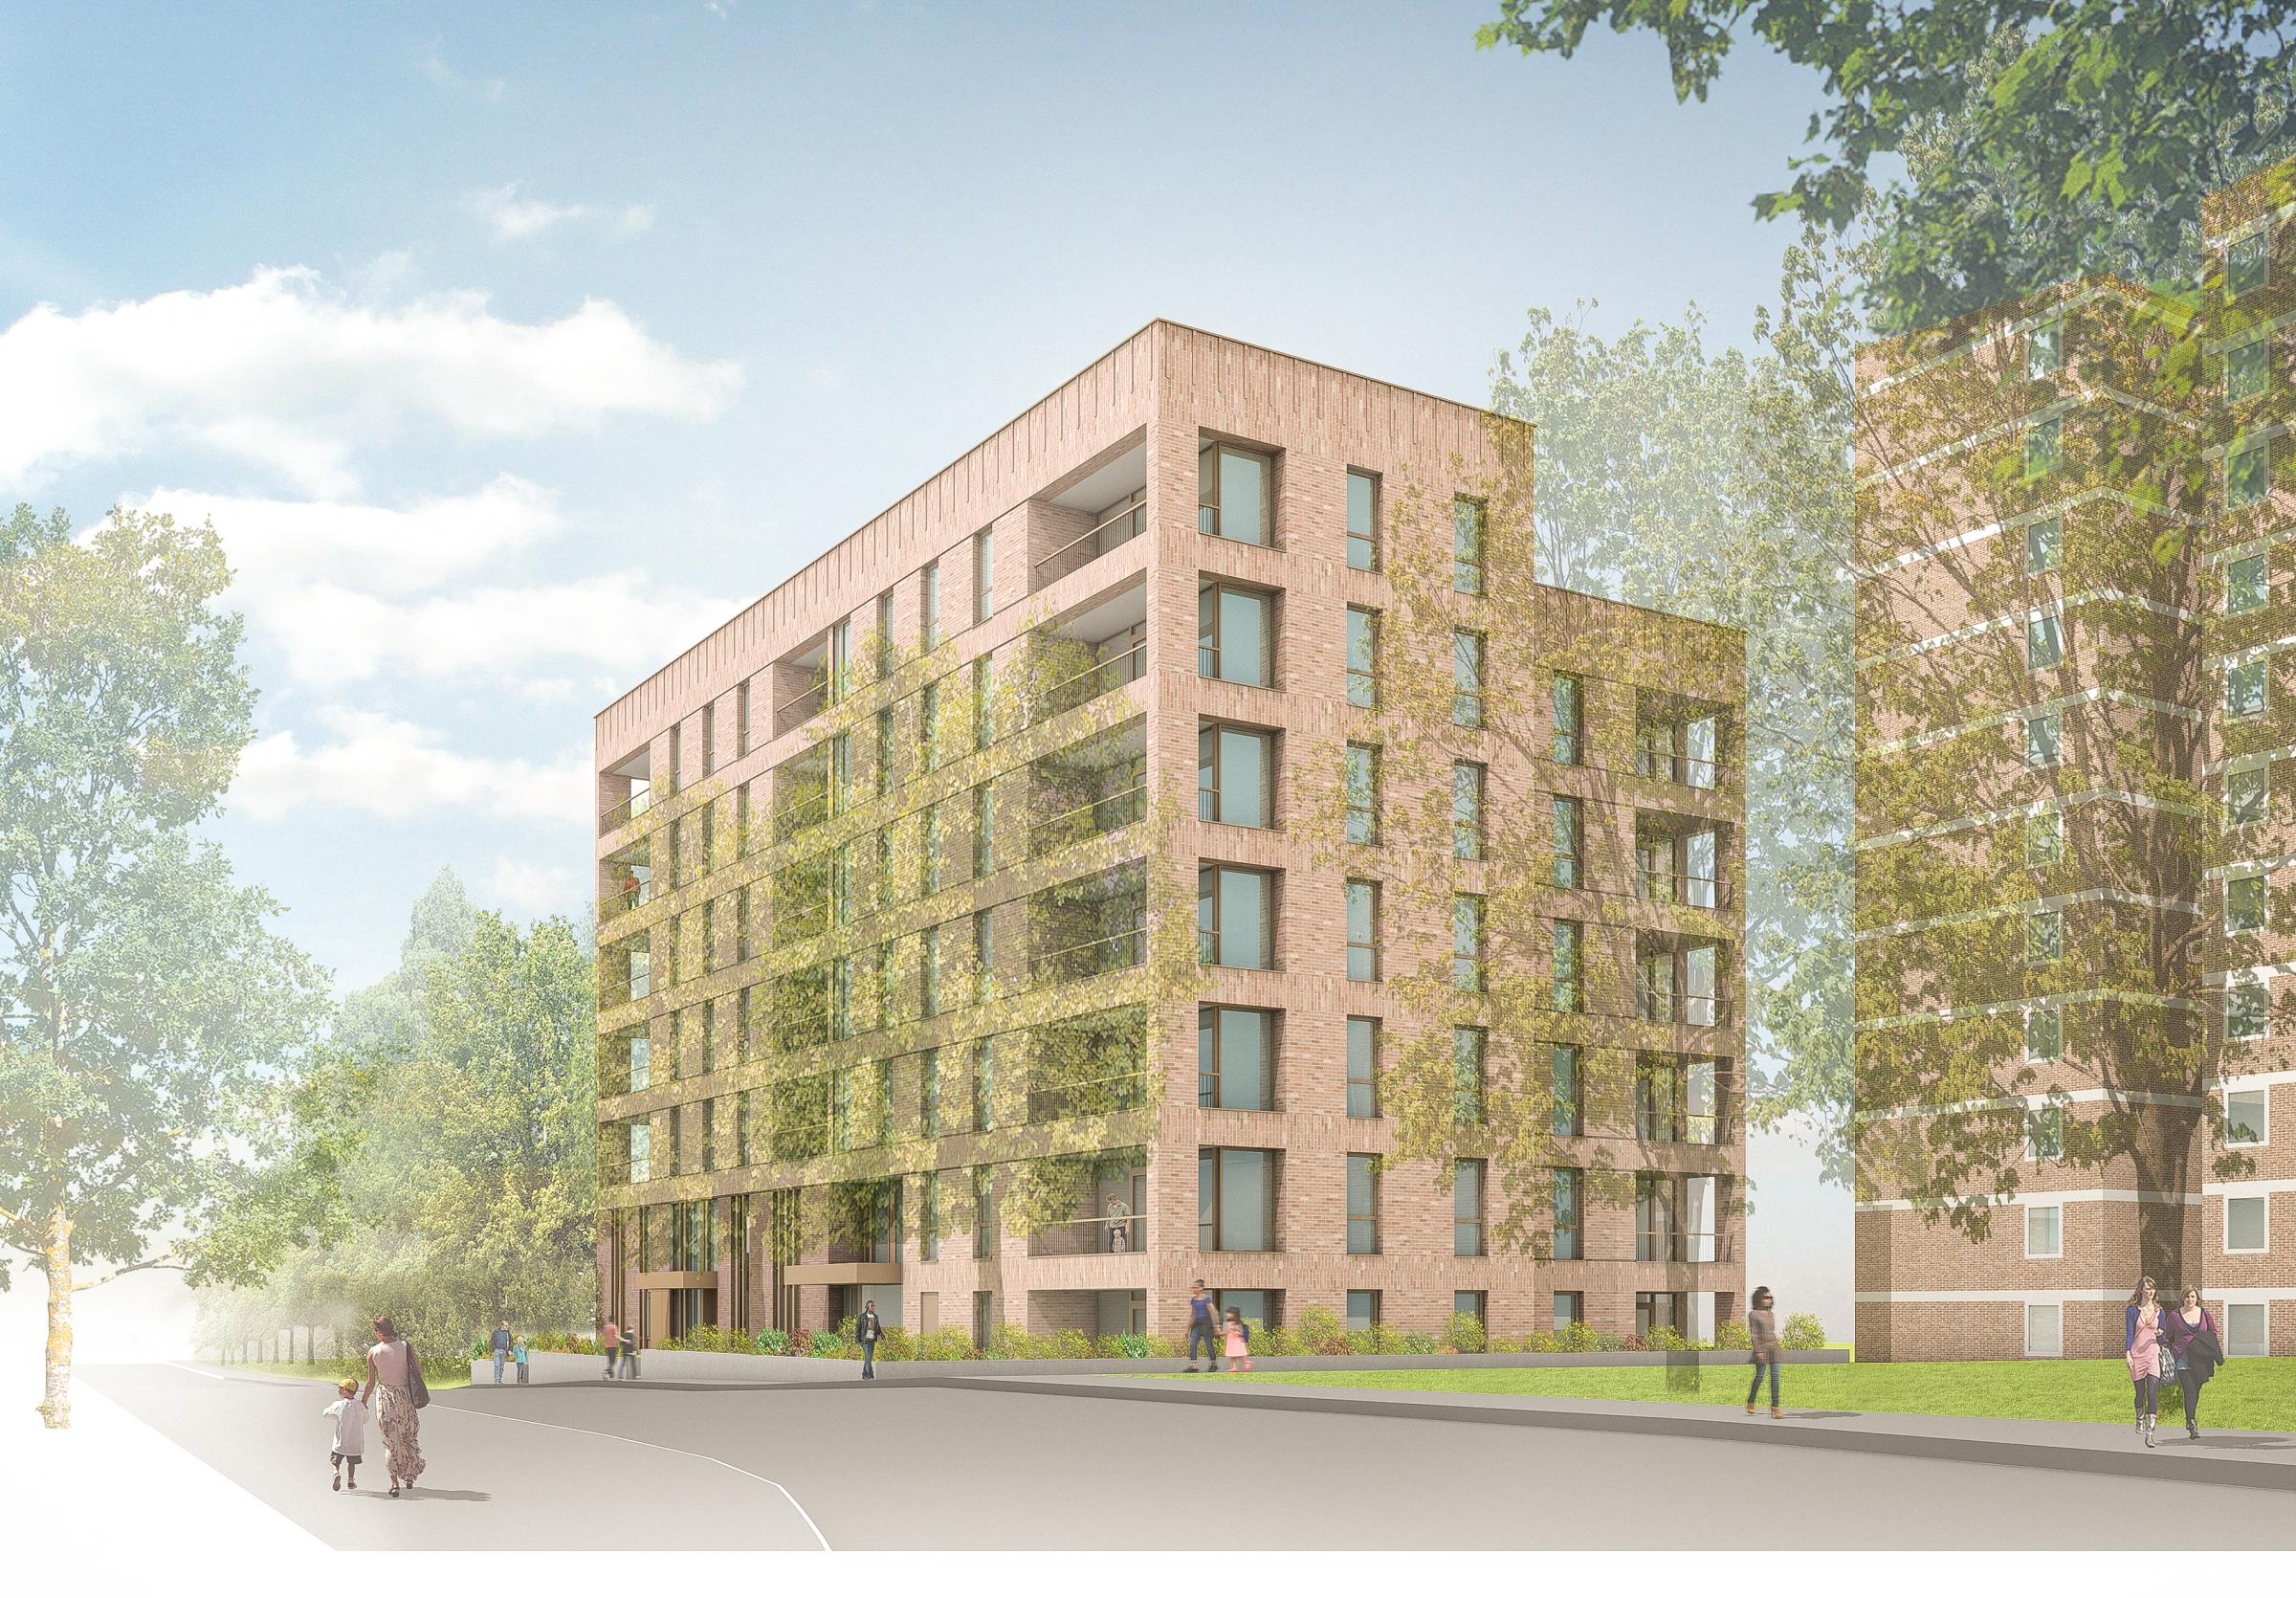 Council homes for homeless families approved in Lewisham - This is Local London